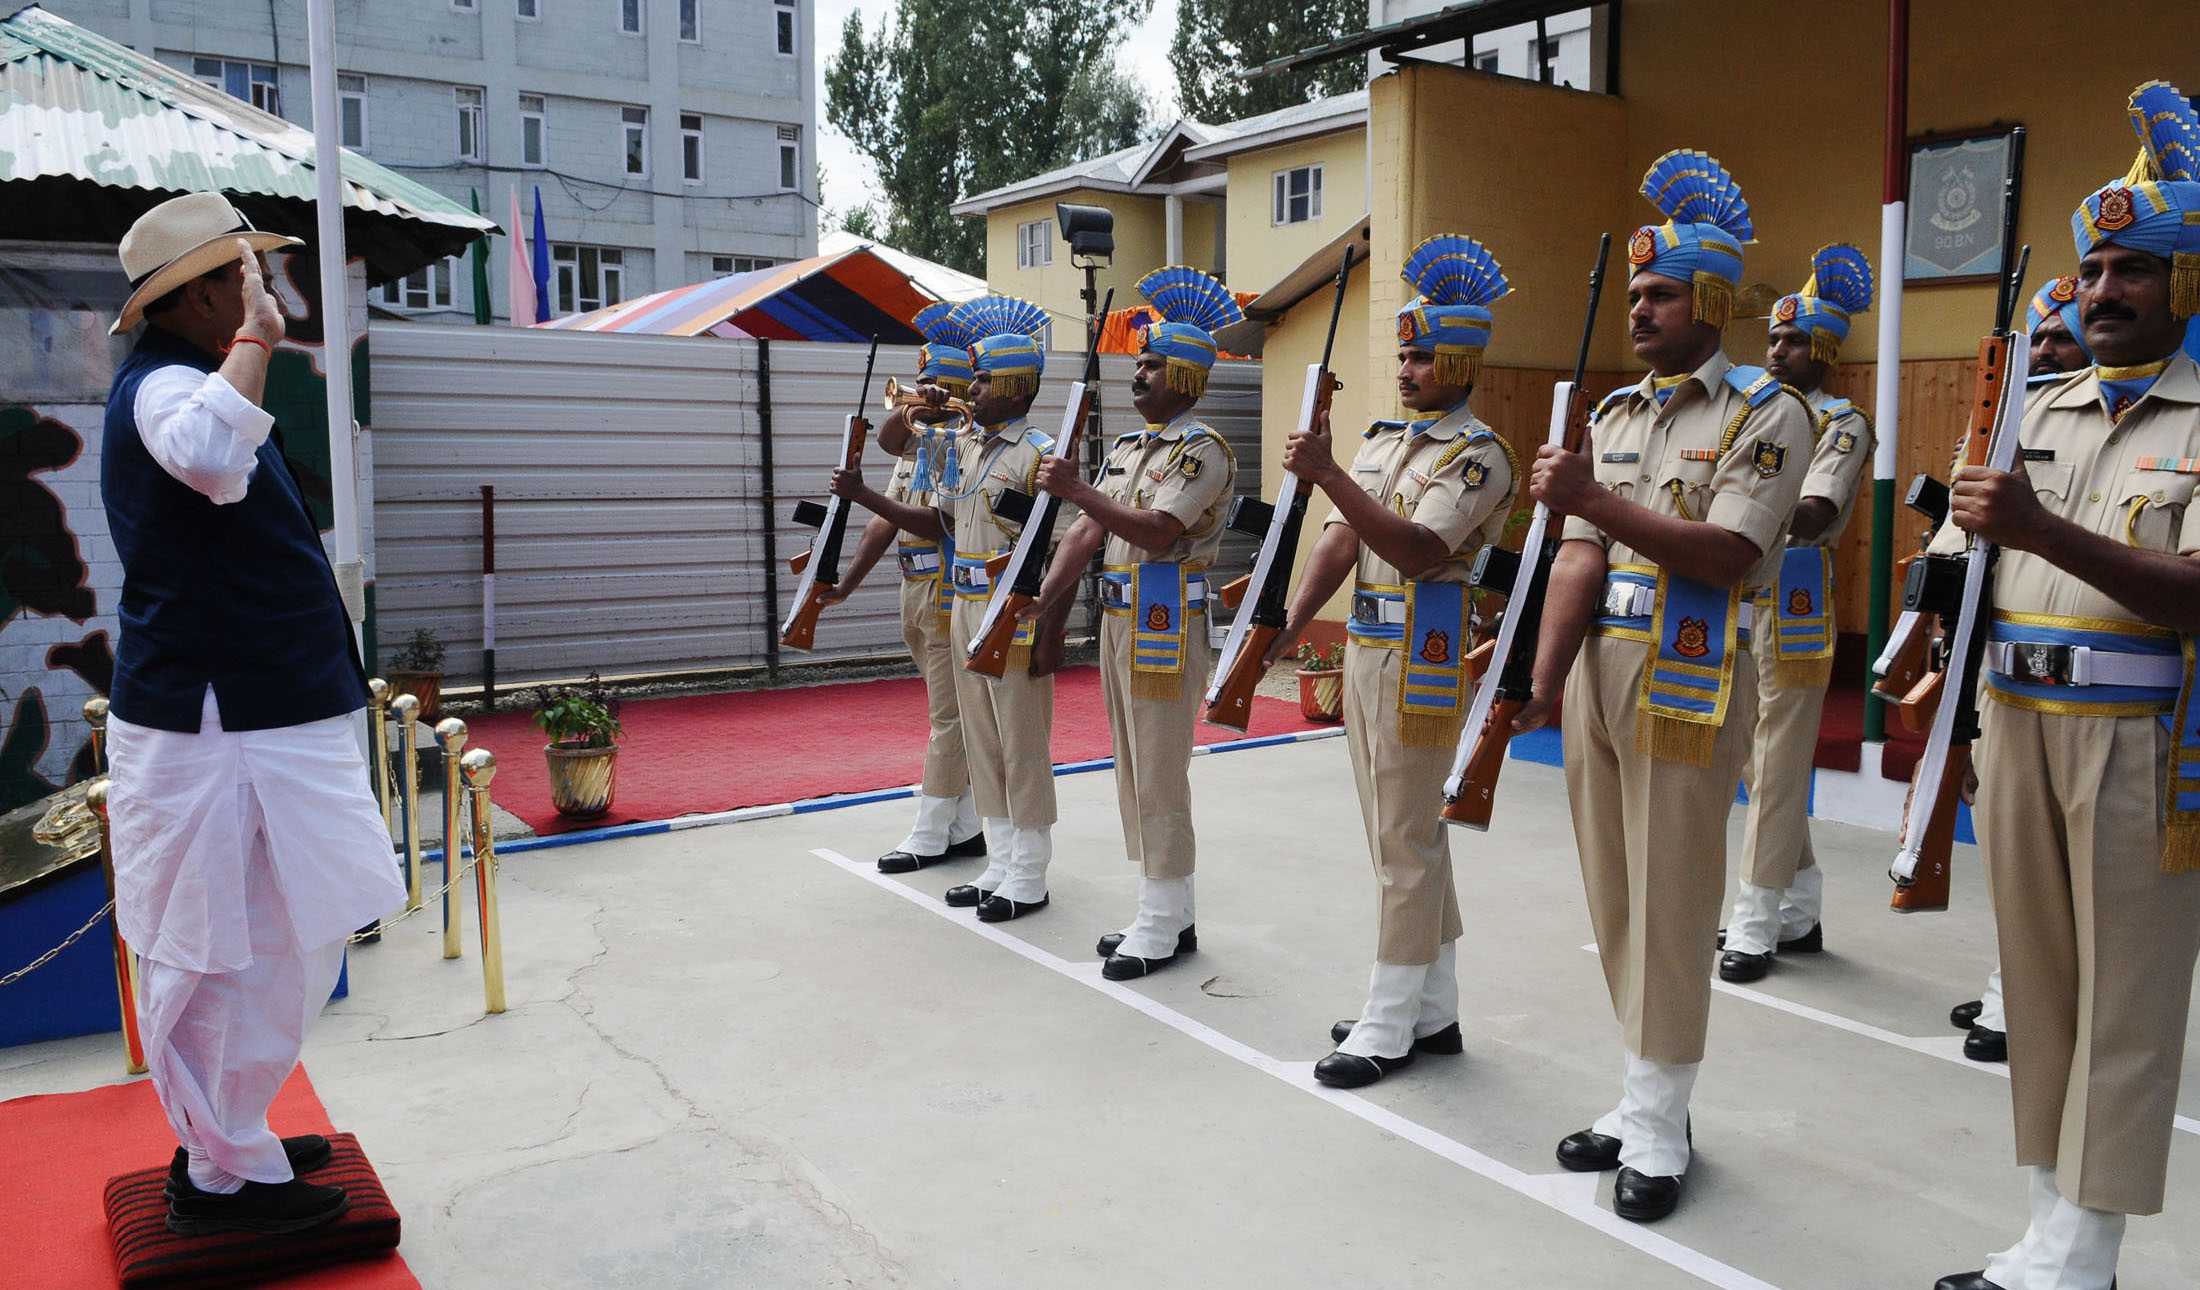 The Union Home Minister, Shri Rajnath Singh taking the salute of the Guard of Honour, during his visit to the CRPF Camp, in Anantnag district on September 10, 2017.